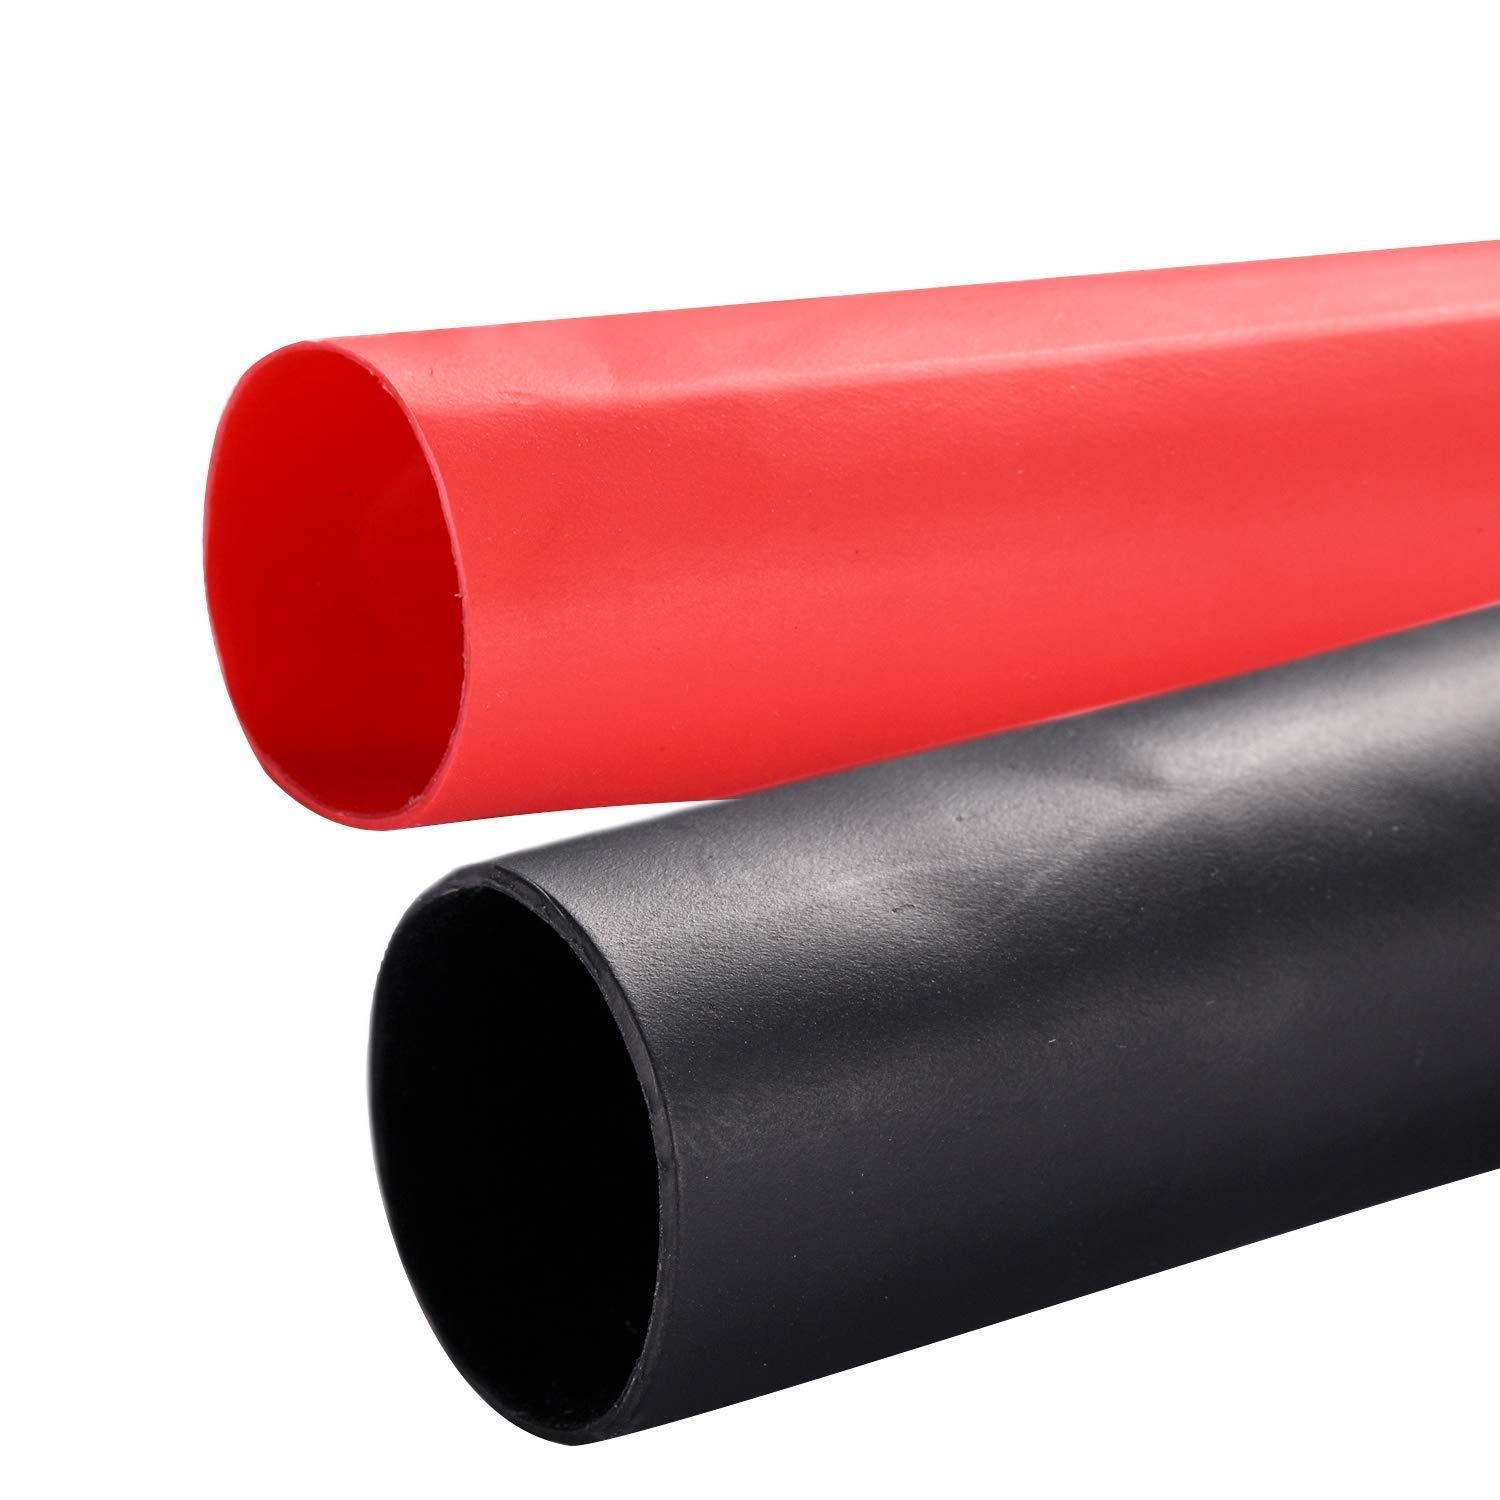 Young4us 2 Pack 3/4'' Heat Shrink Tube 3:1 Adhesive-Lined Heat Shrinkable Tubing Black&RED 4Ft